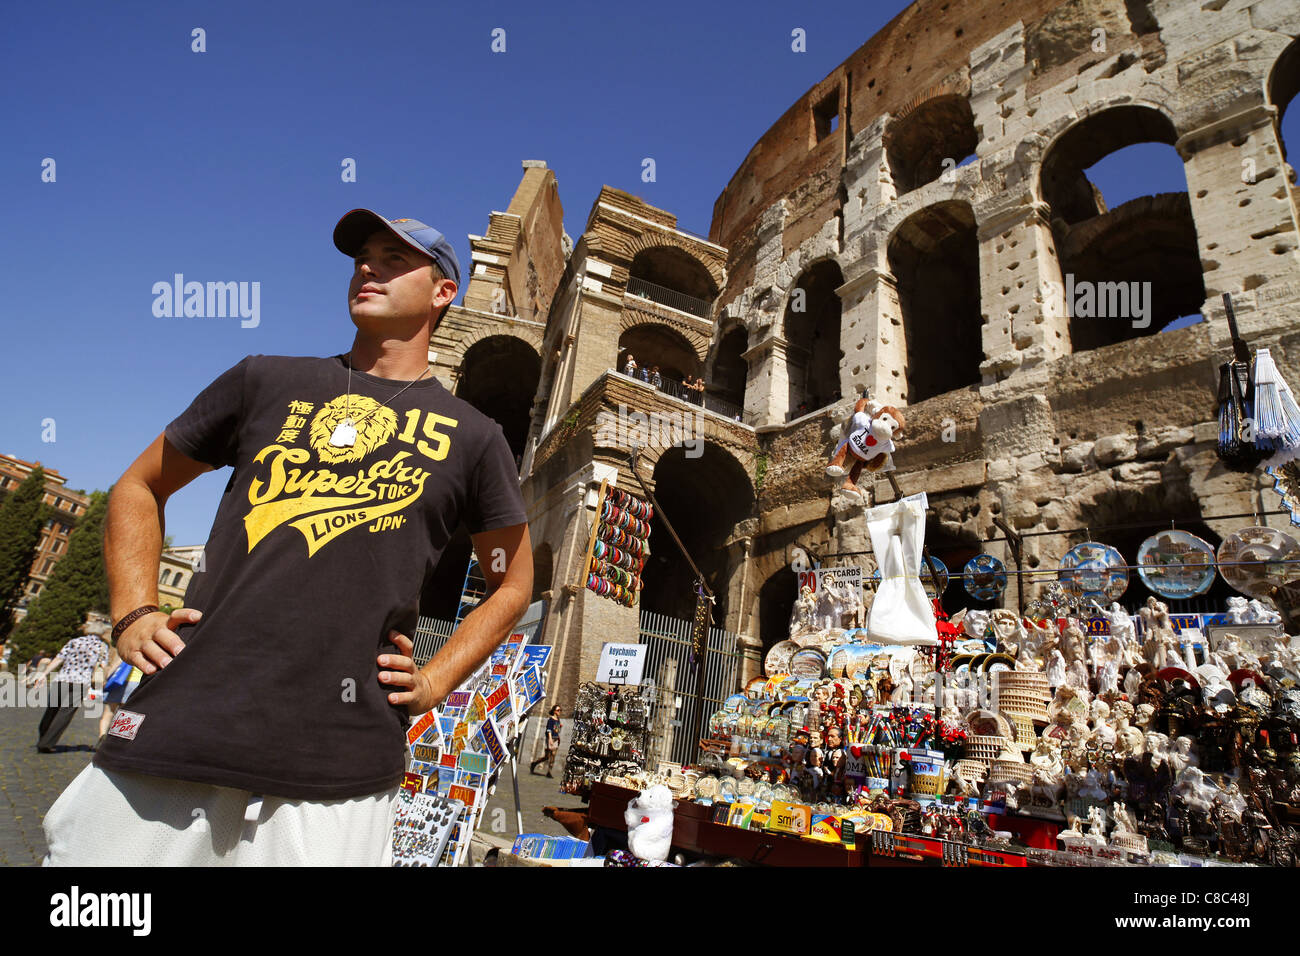 A souvenir stallholder waits for tourists outside the Colosseum in Rome, Italy. - Stock Image